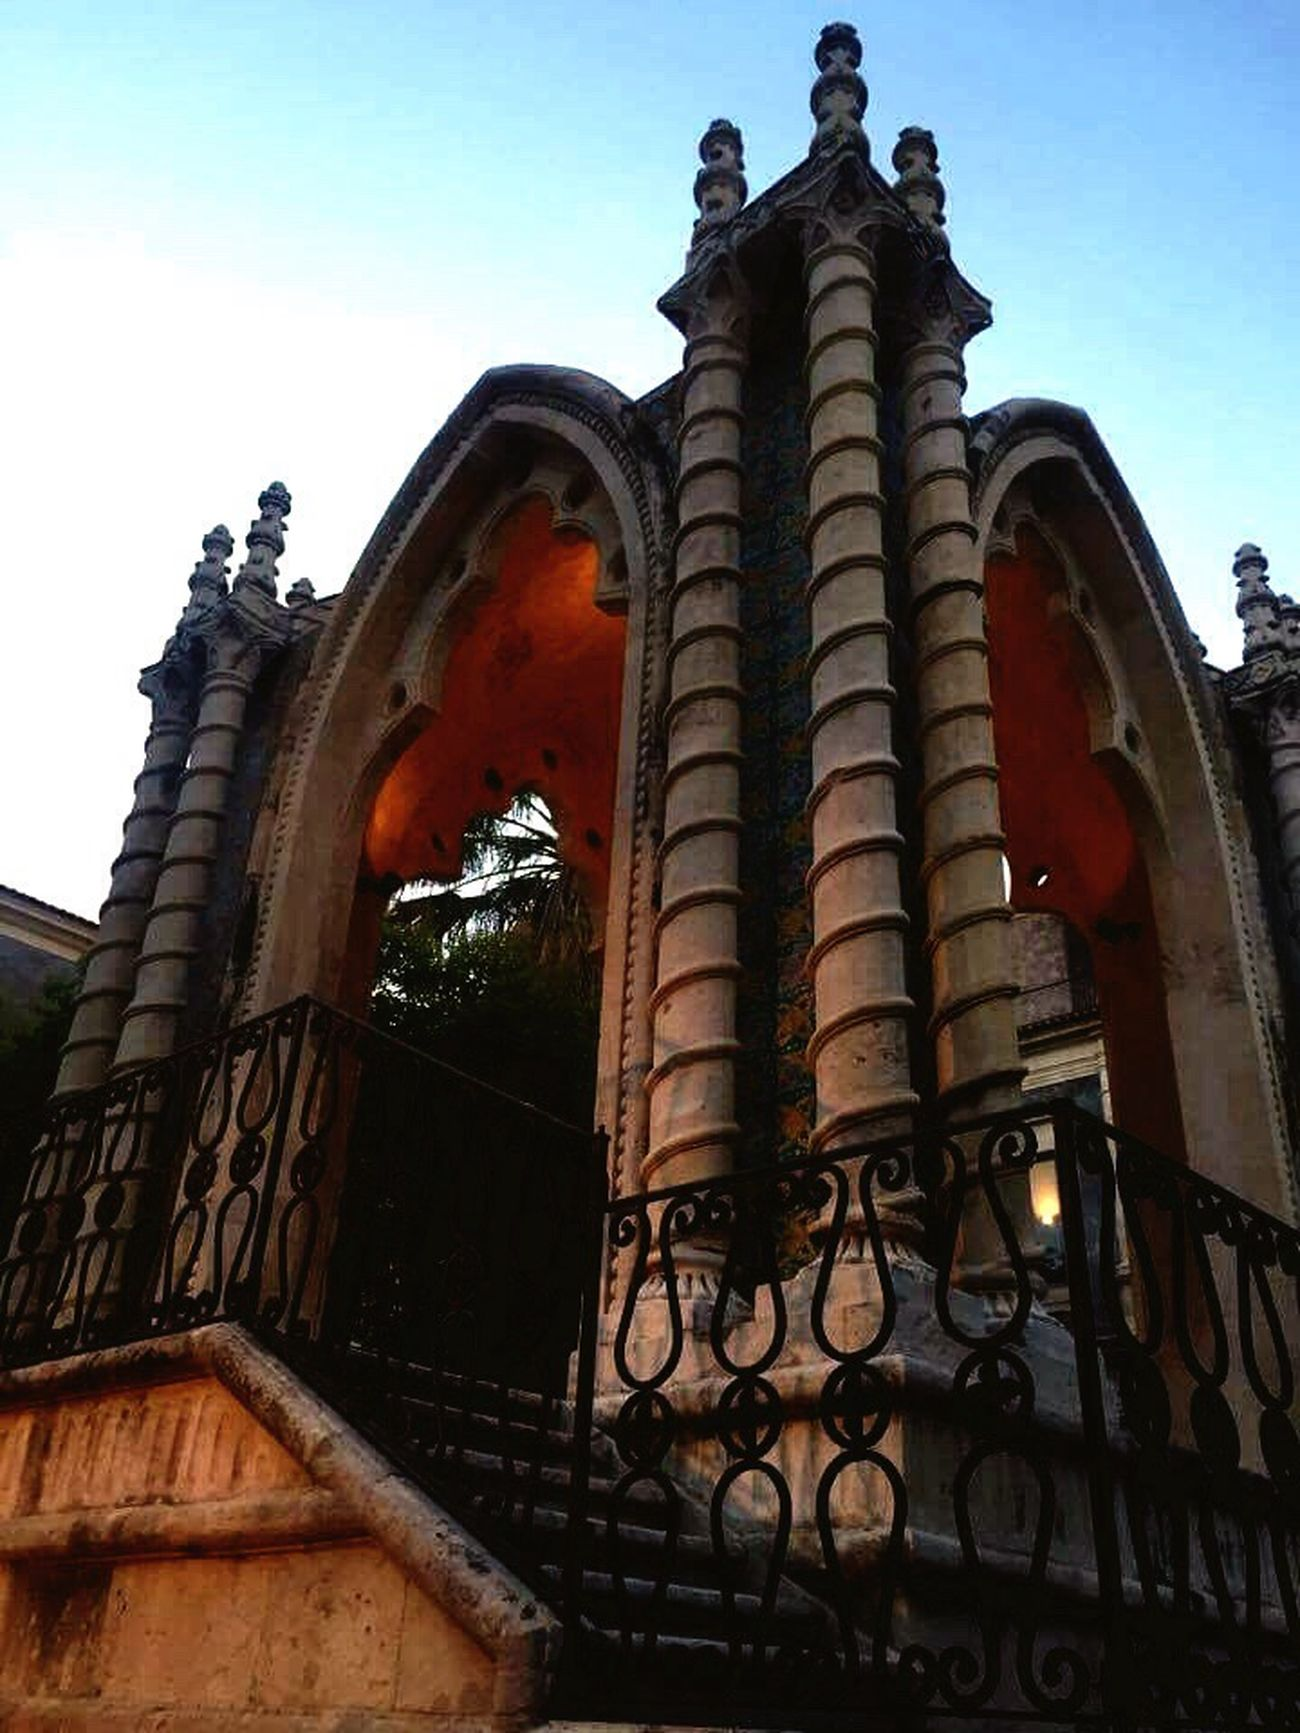 Architecture Low Angle View Built Structure Building Exterior No People Place Of Worship Religion Spirituality Outdoors Tranquility Cloister Ancient Monastery Eyeem Photography The Architect - 2017 EyeEm Awards The Great Outdoors - 2017 EyeEm Awards Mycity Catania, Sicily